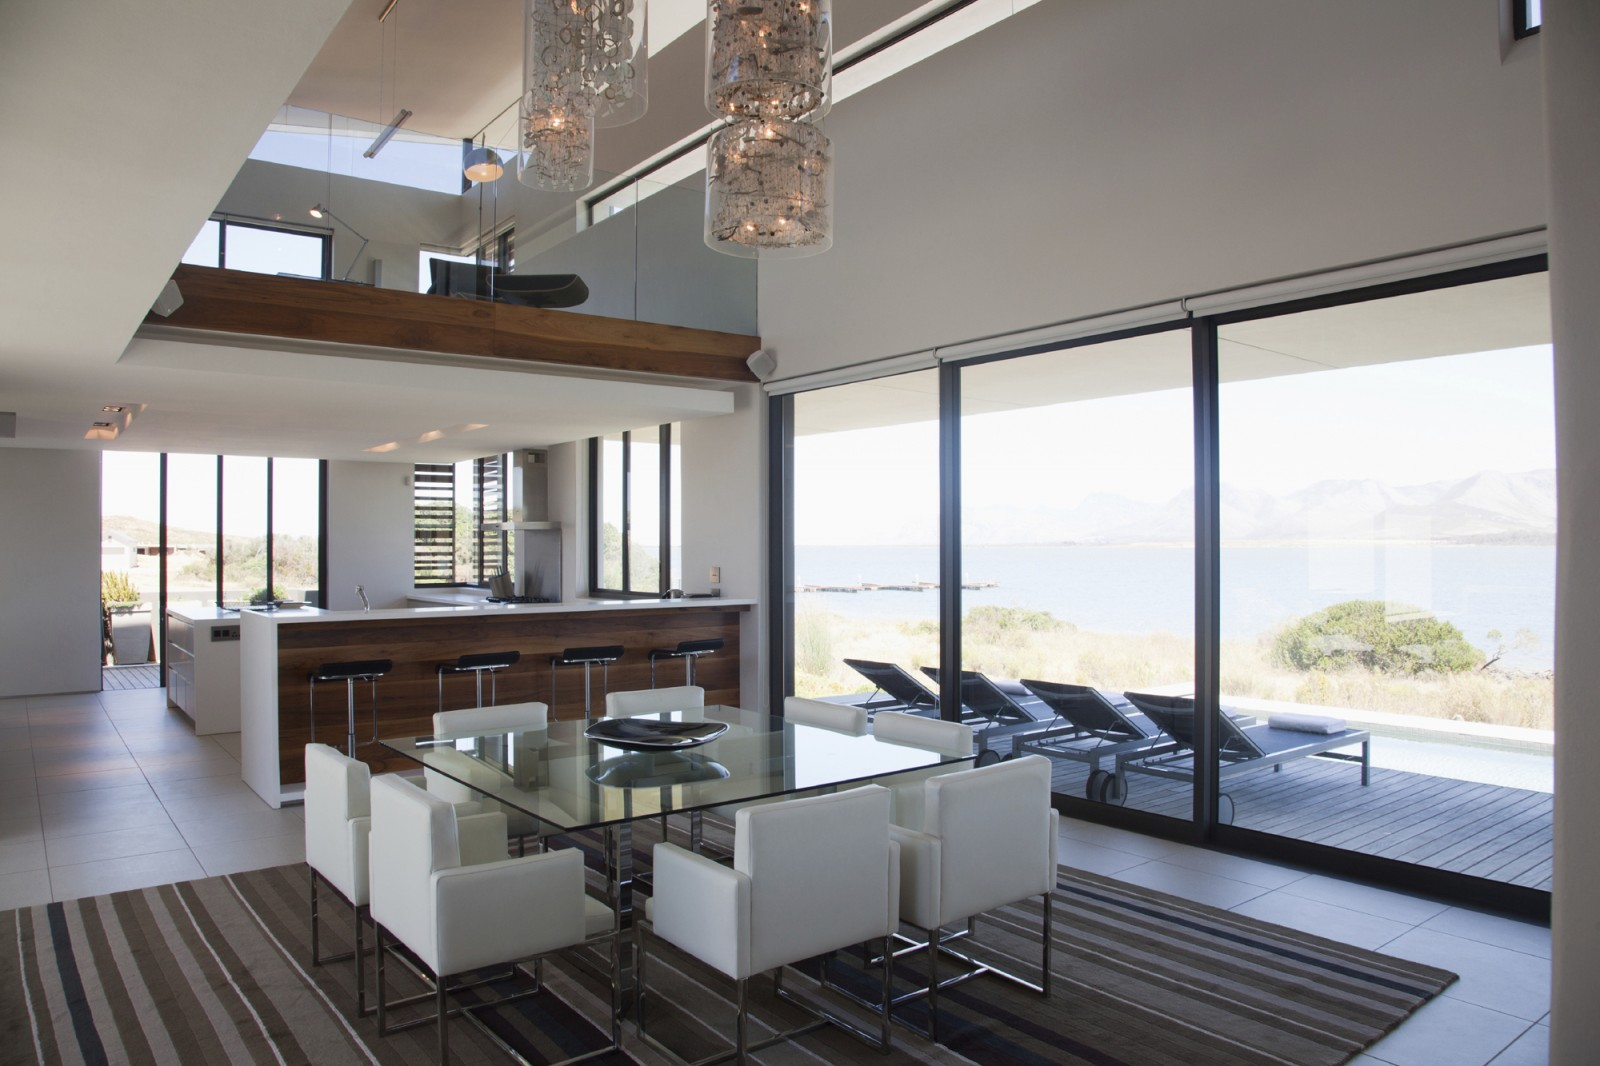 Living room with glass walls